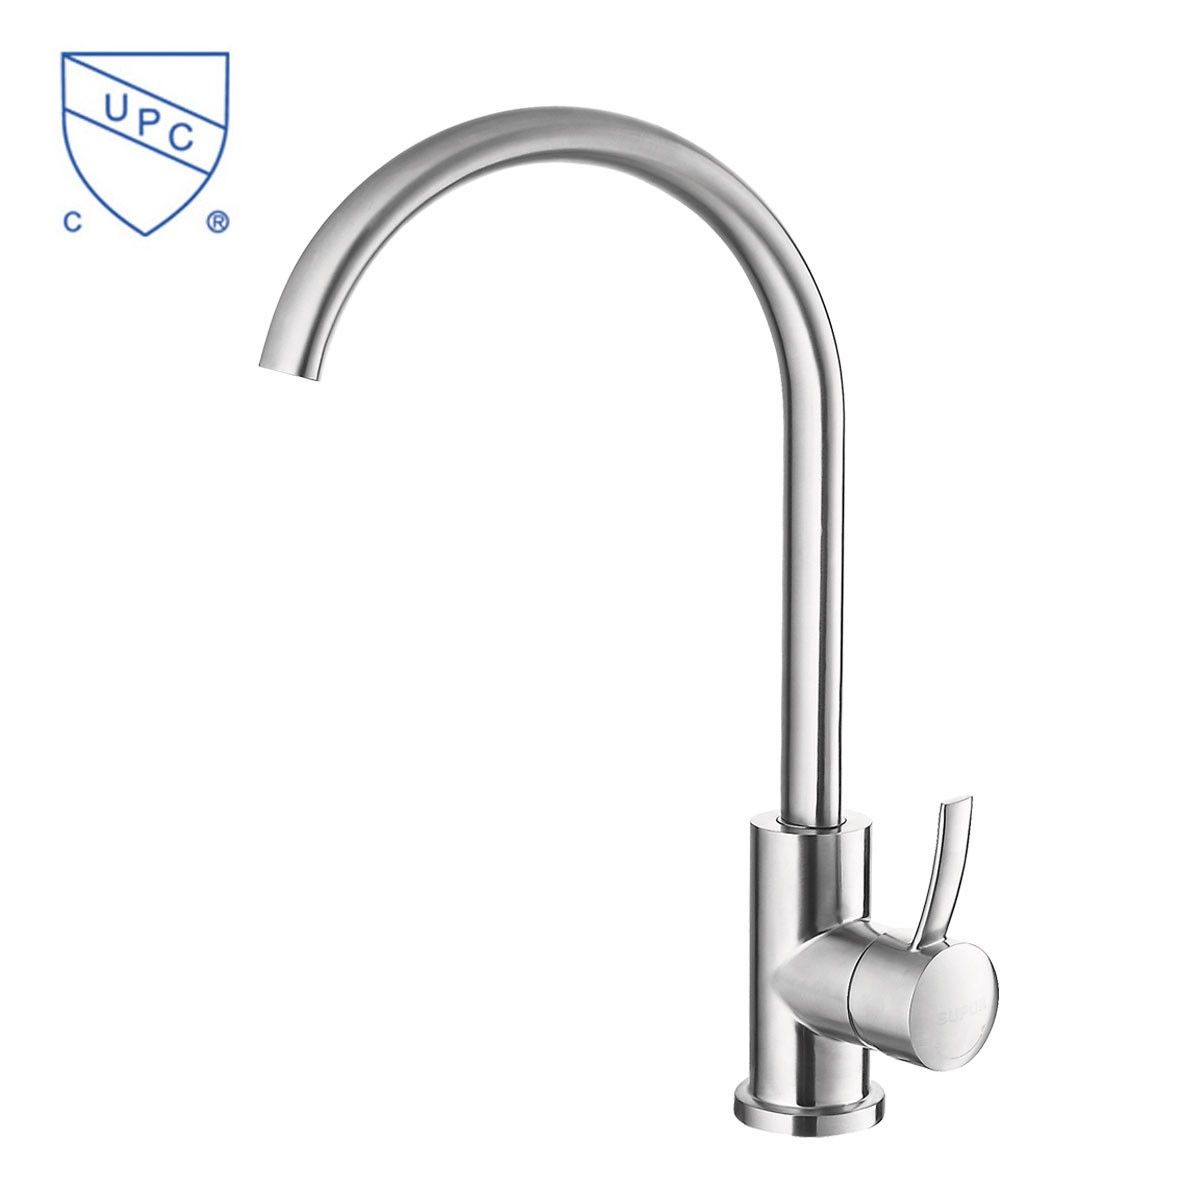 SUPOR Stainless Steel Lead Free Kitchen Faucet (250807-01-LS)